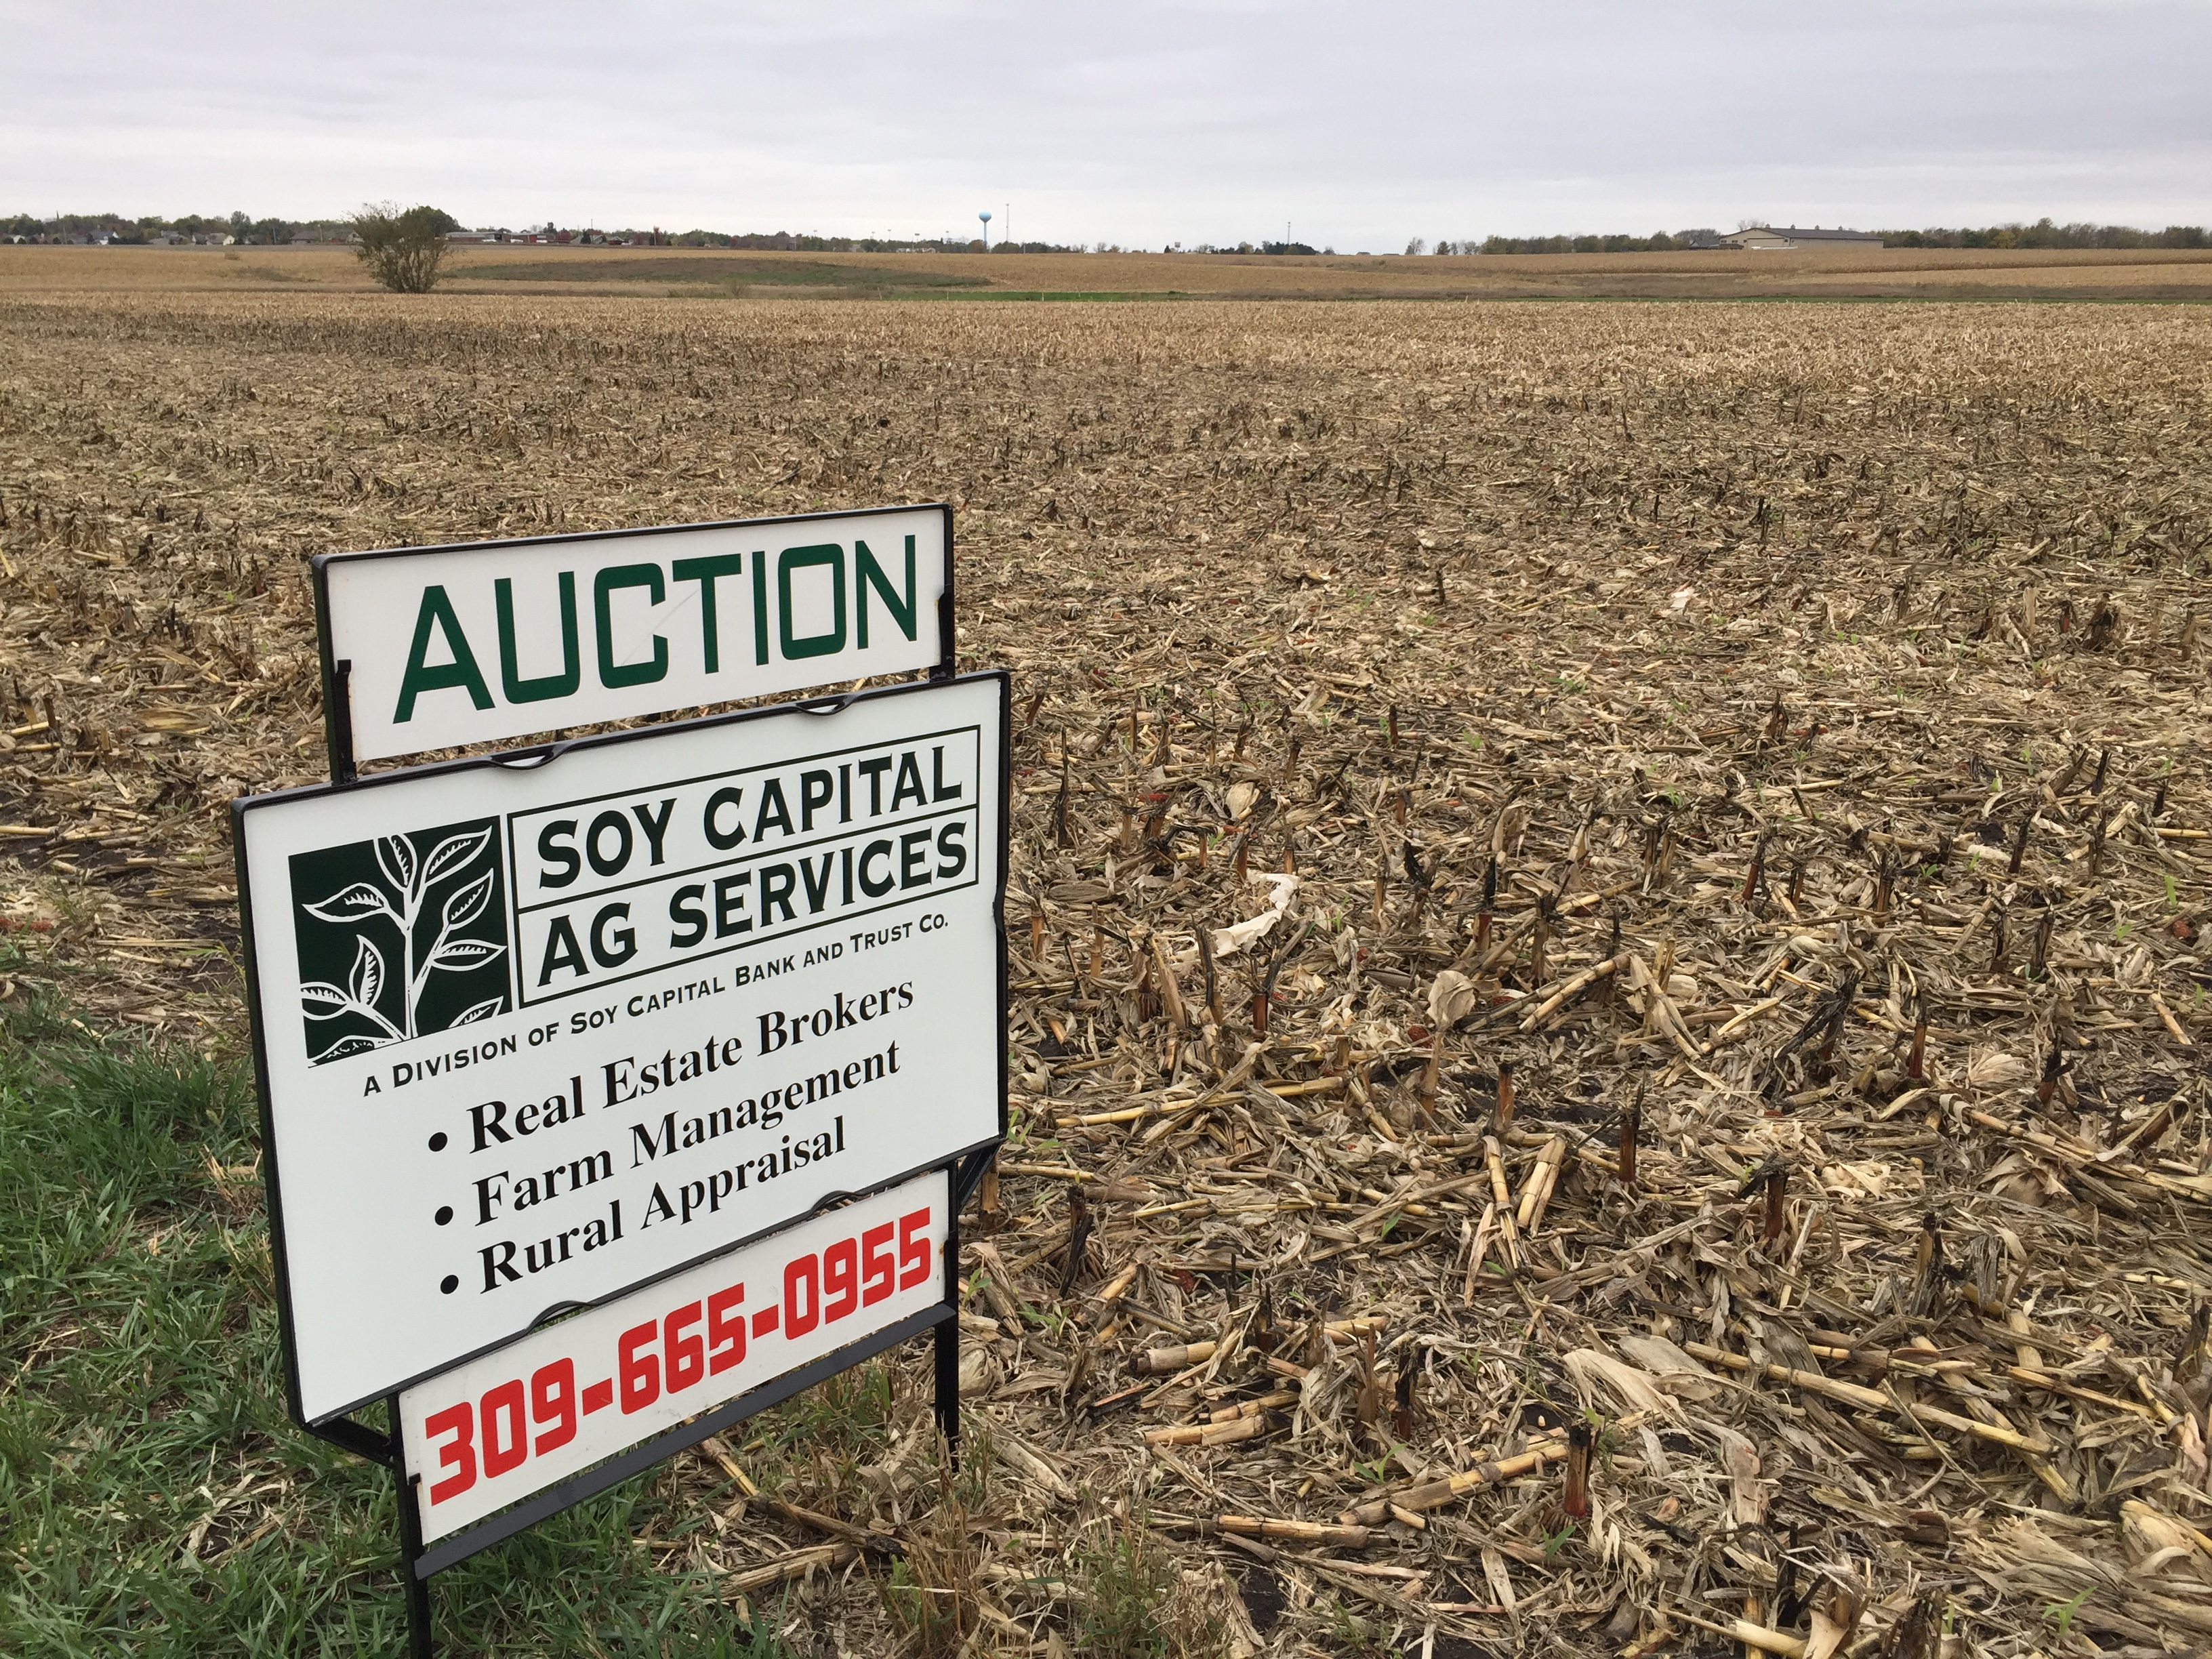 Picture of Giannini Farm wth for sale sign